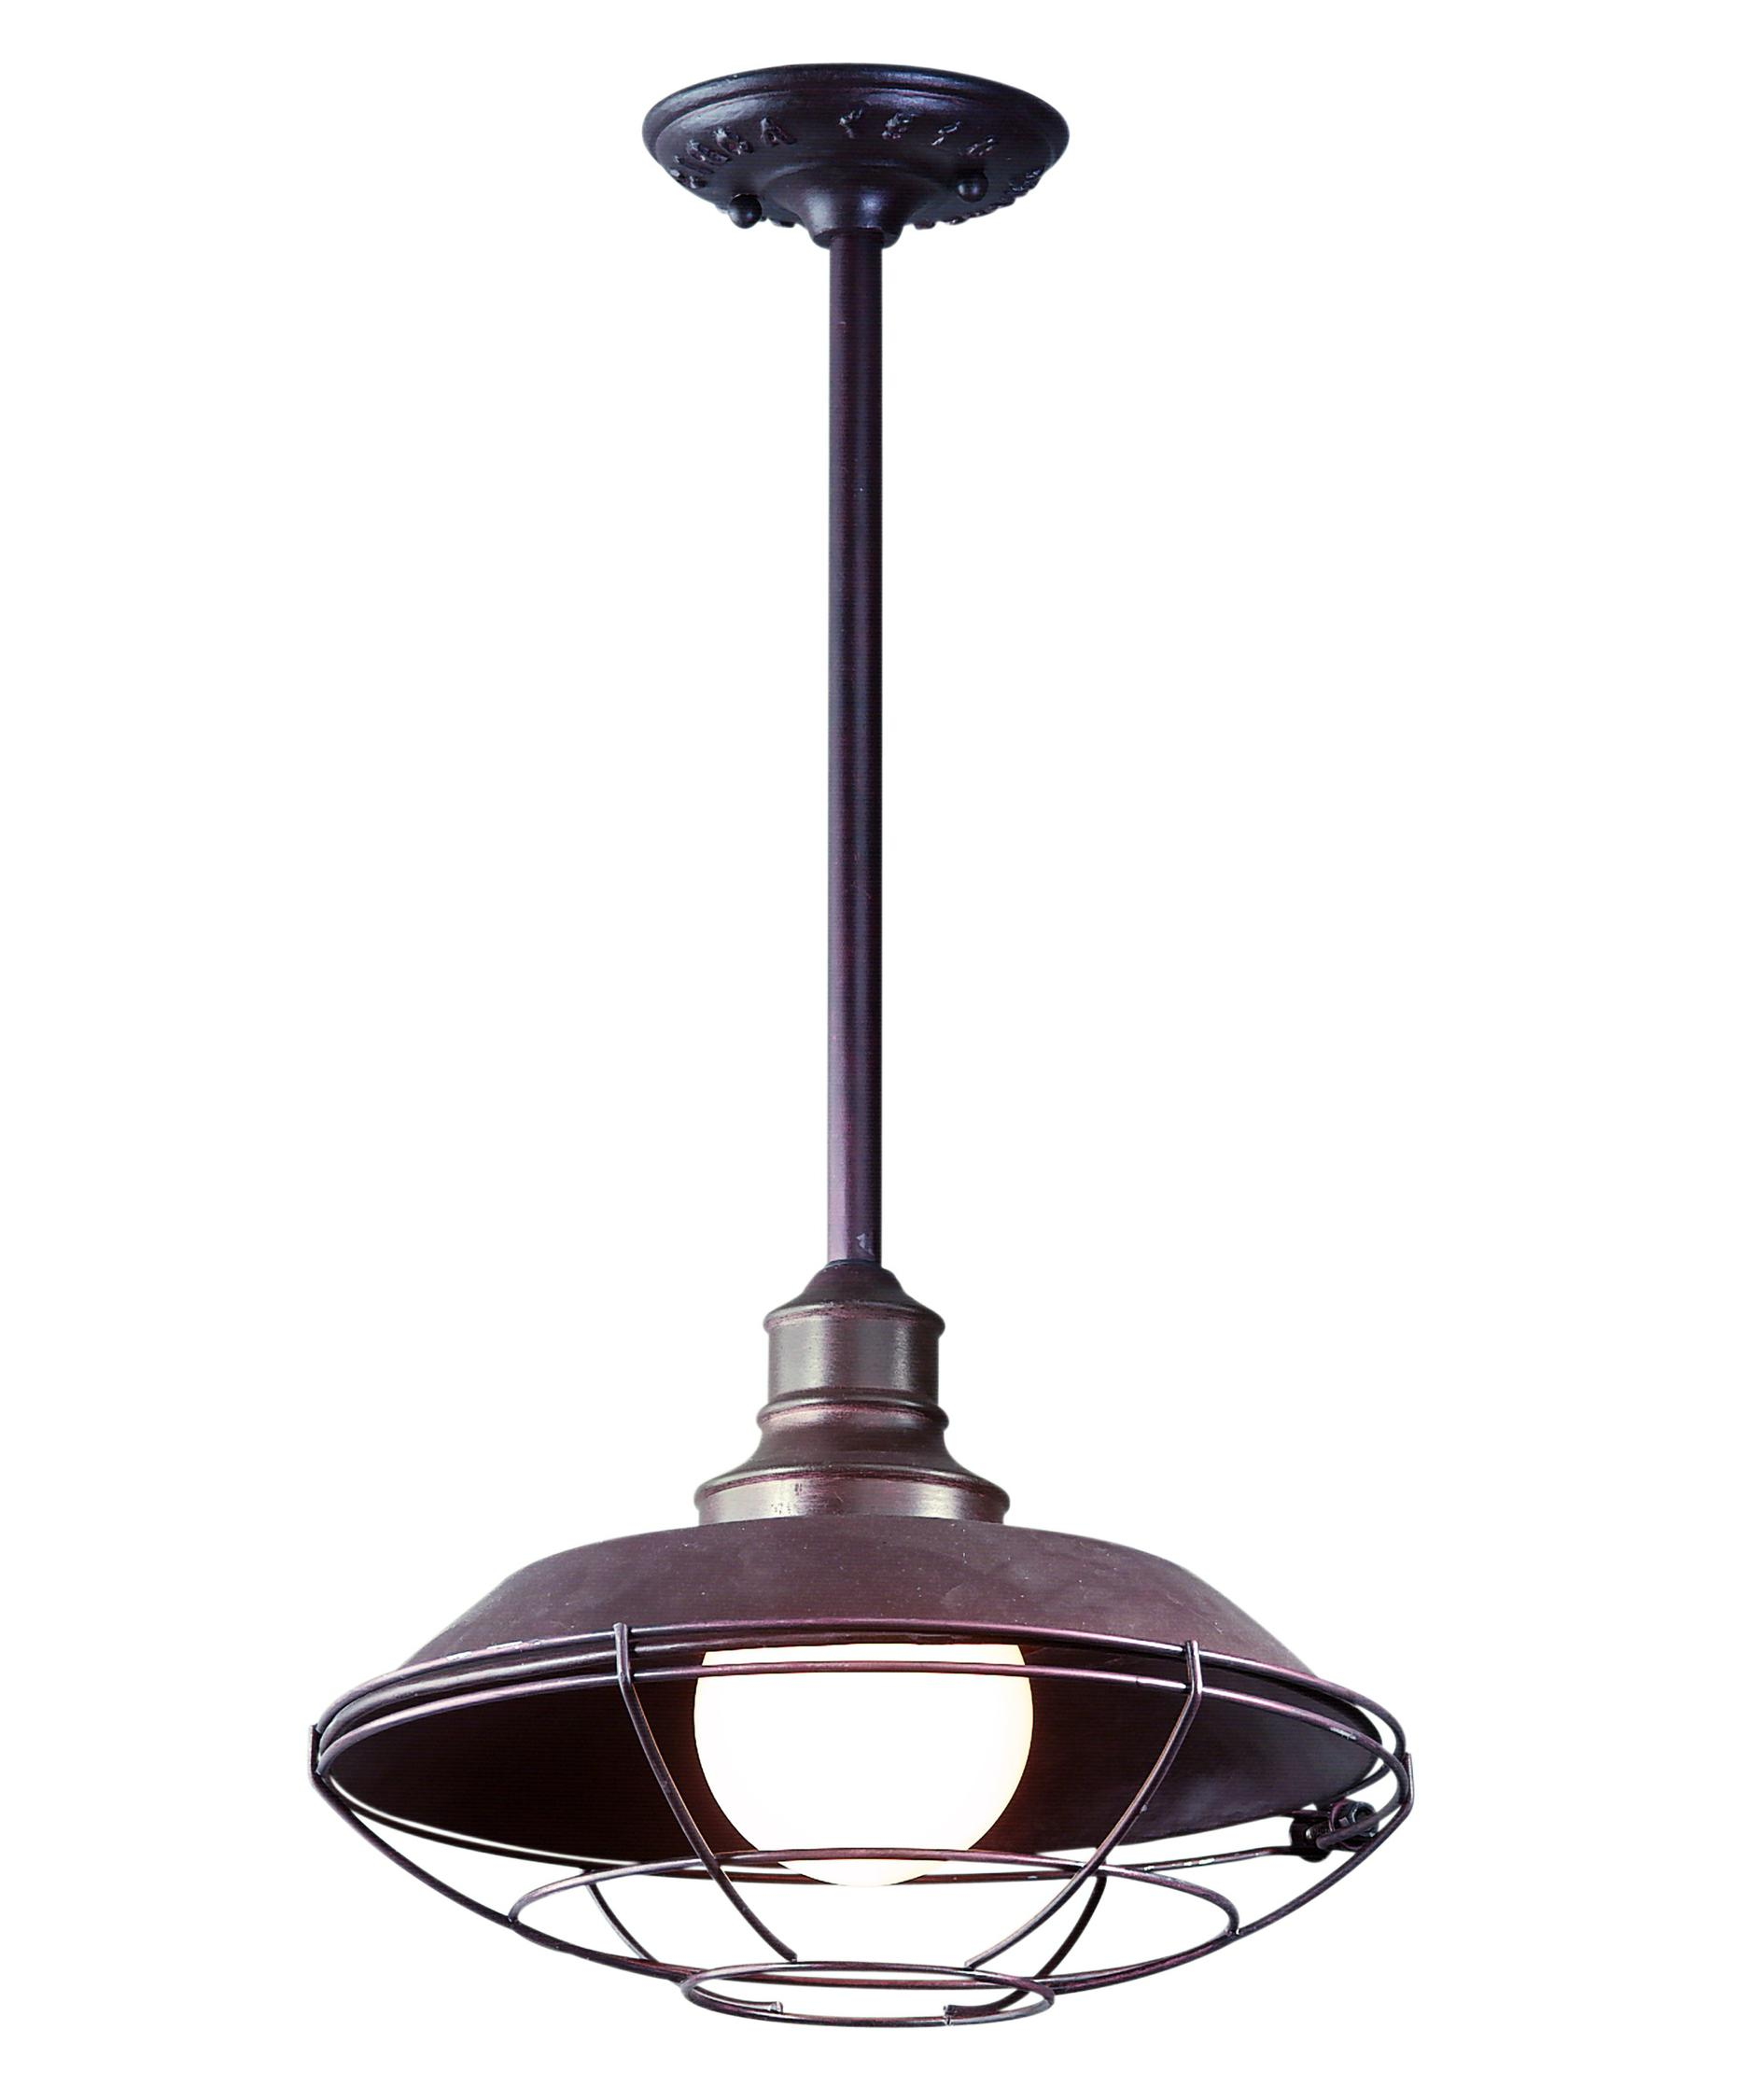 lighting hanging from the ceiling. shown in old rust finish lighting hanging from the ceiling